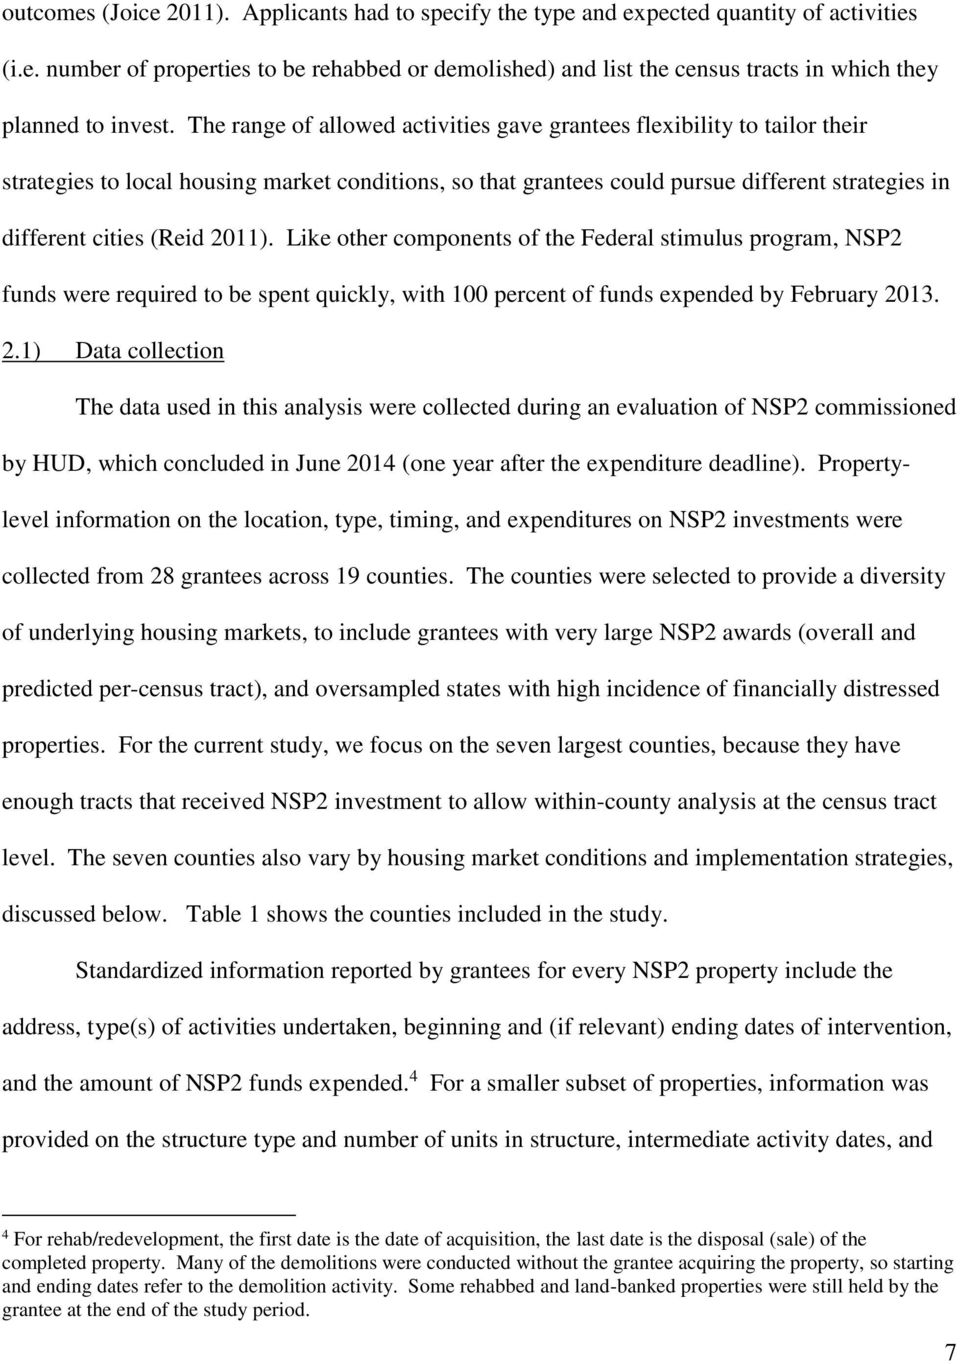 2011). Like other components of the Federal stimulus program, NSP2 funds were required to be spent quickly, with 100 percent of funds expended by February 20